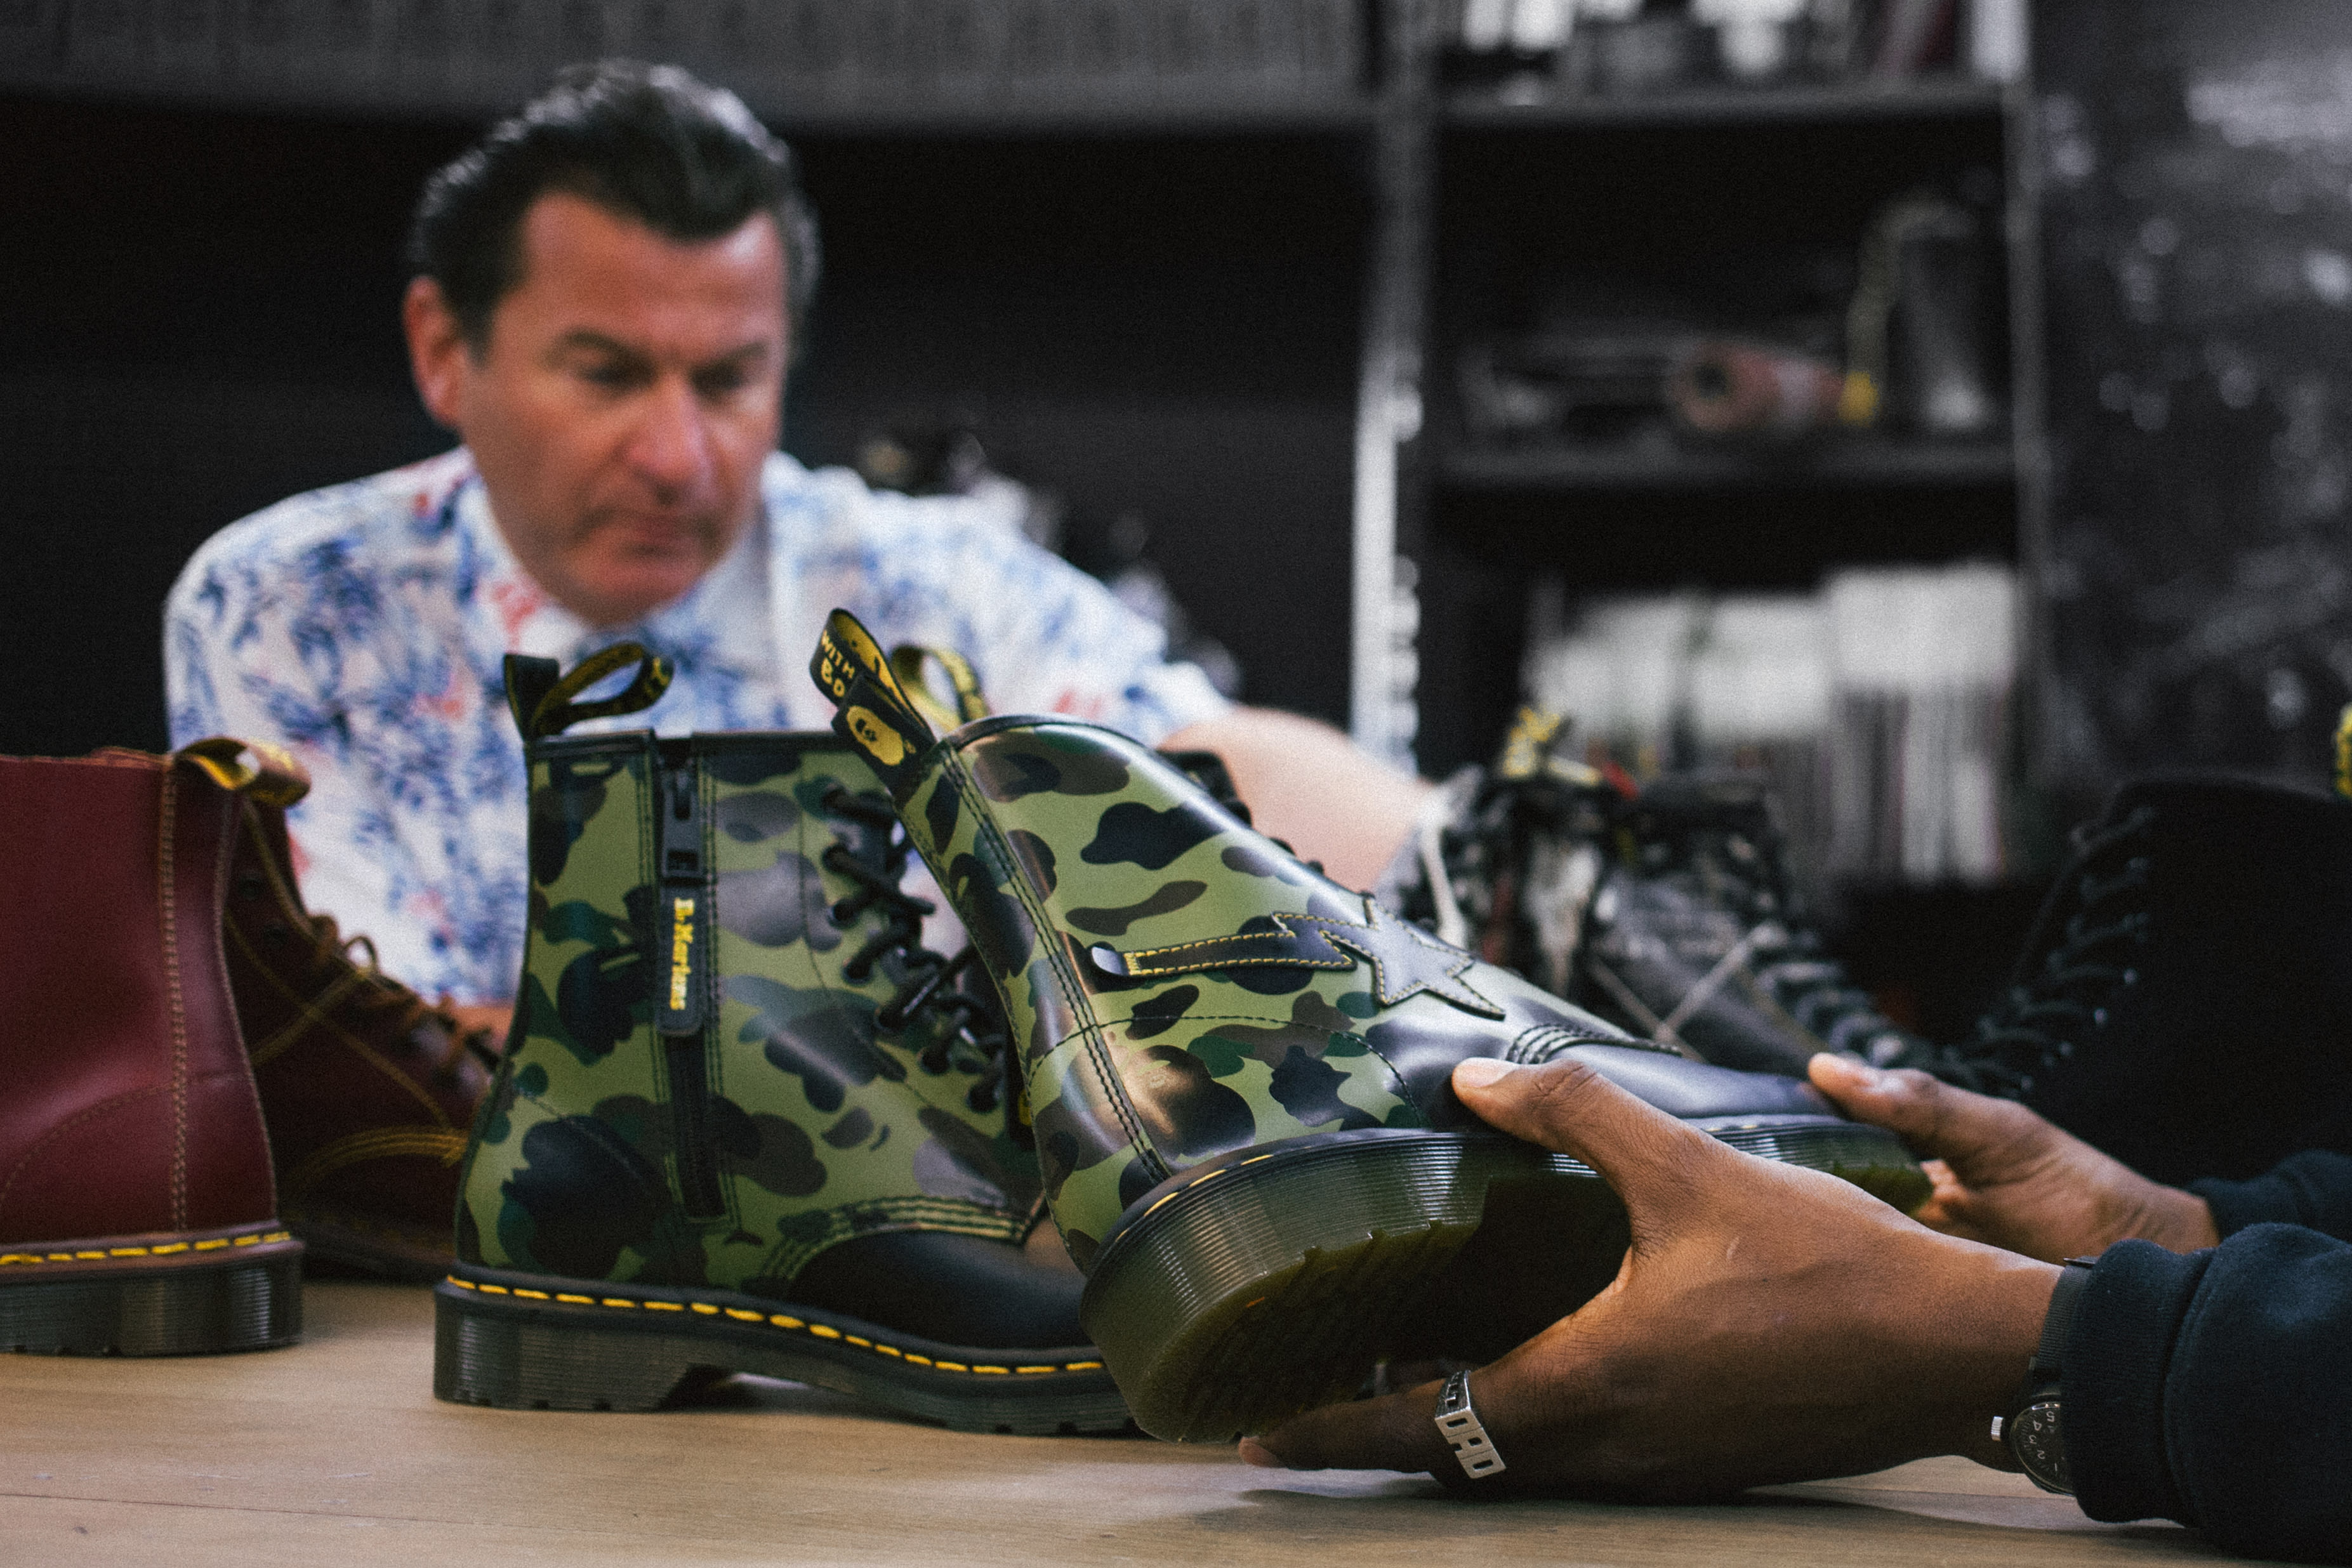 The Dr. Martens x A Bathing Ape 1460 Boot for the 1460 Remastered Collection.